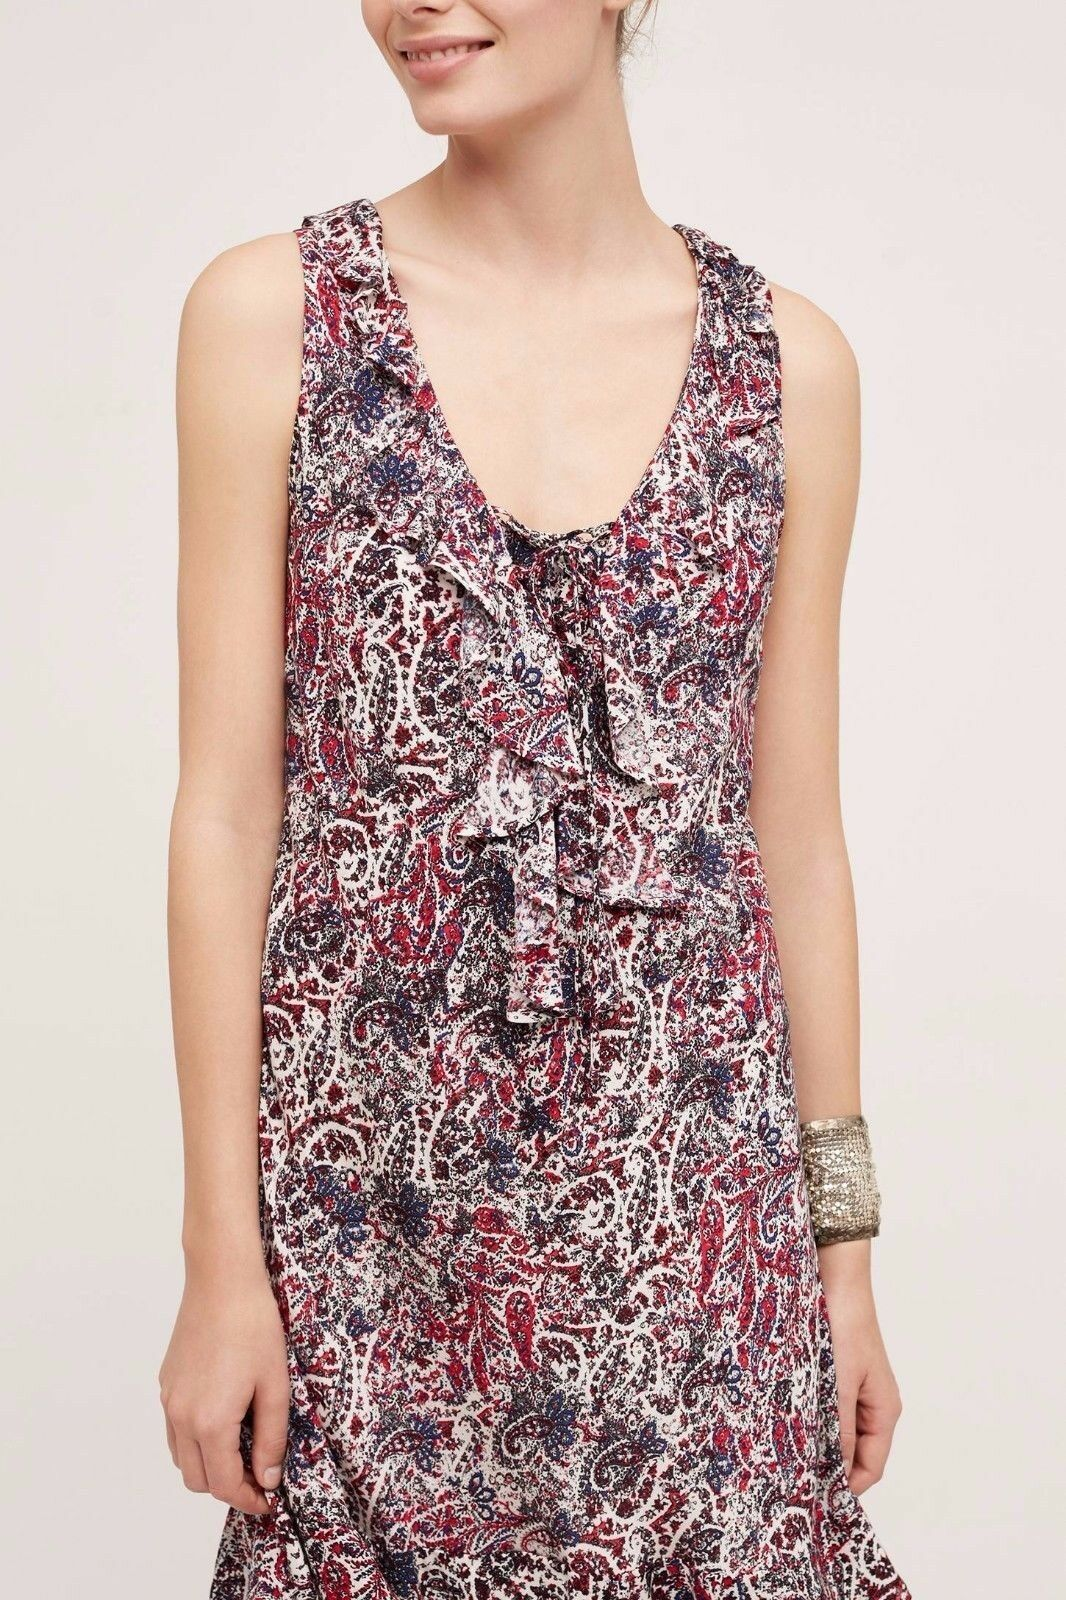 9e3e96bbd7e7 New New New Anthropologie Windward Dress by Maeve. Large a2cc03 ...